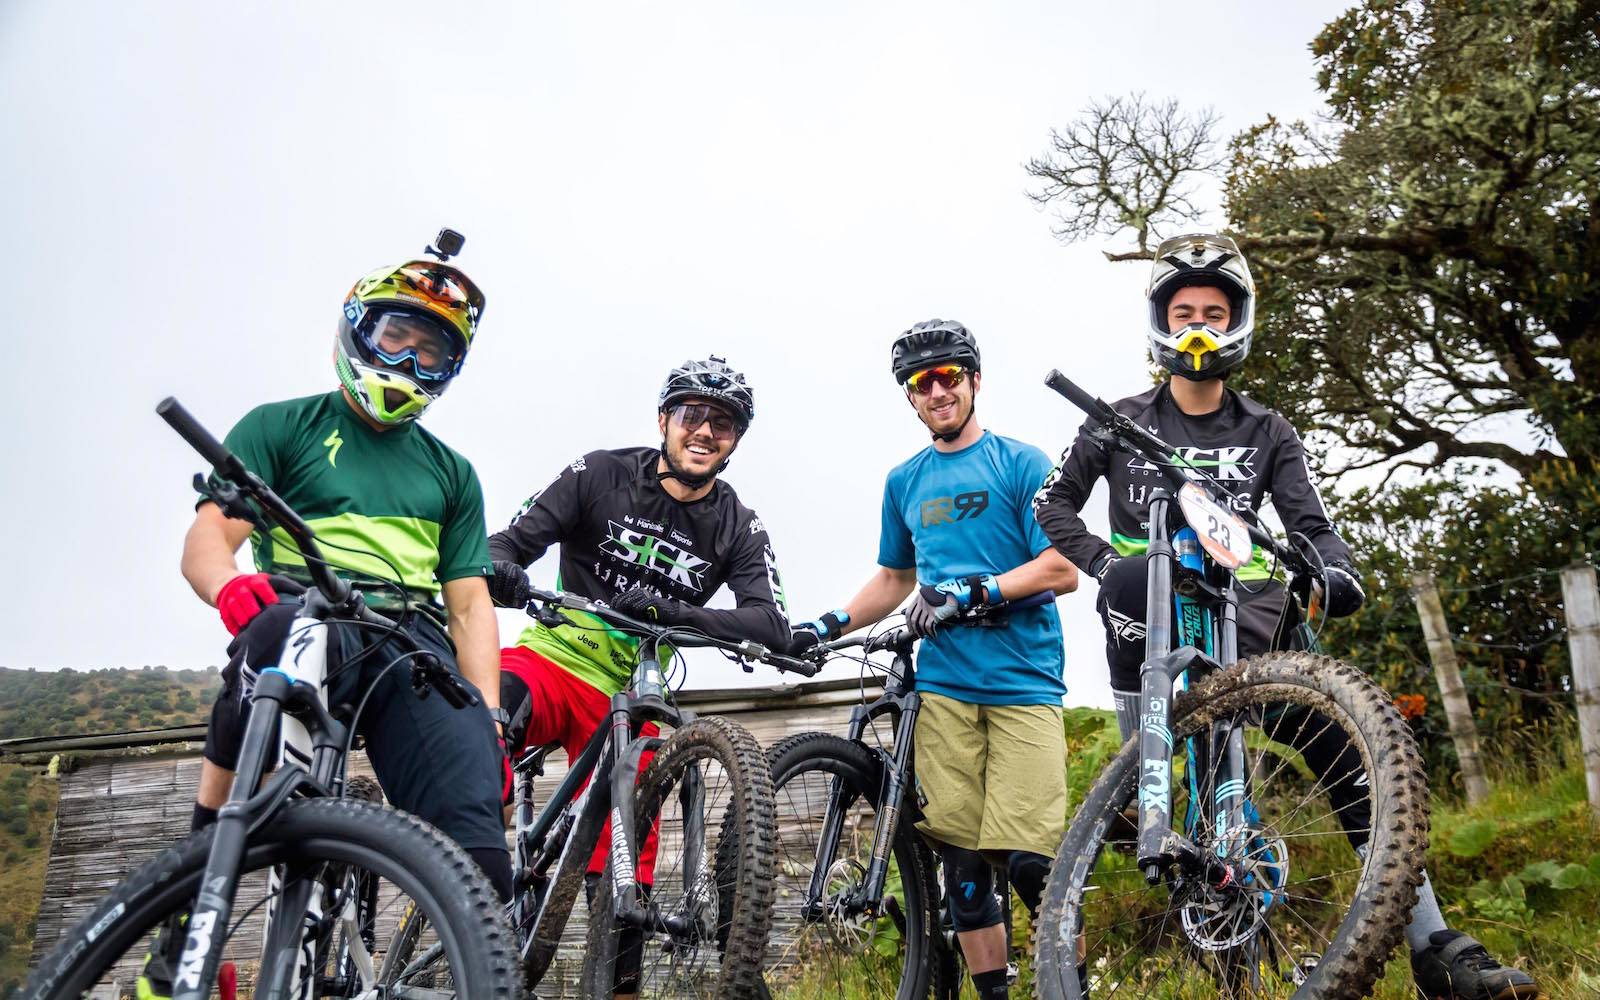 Such a strong crew ready to drop in on the Hoyo Frio trail.